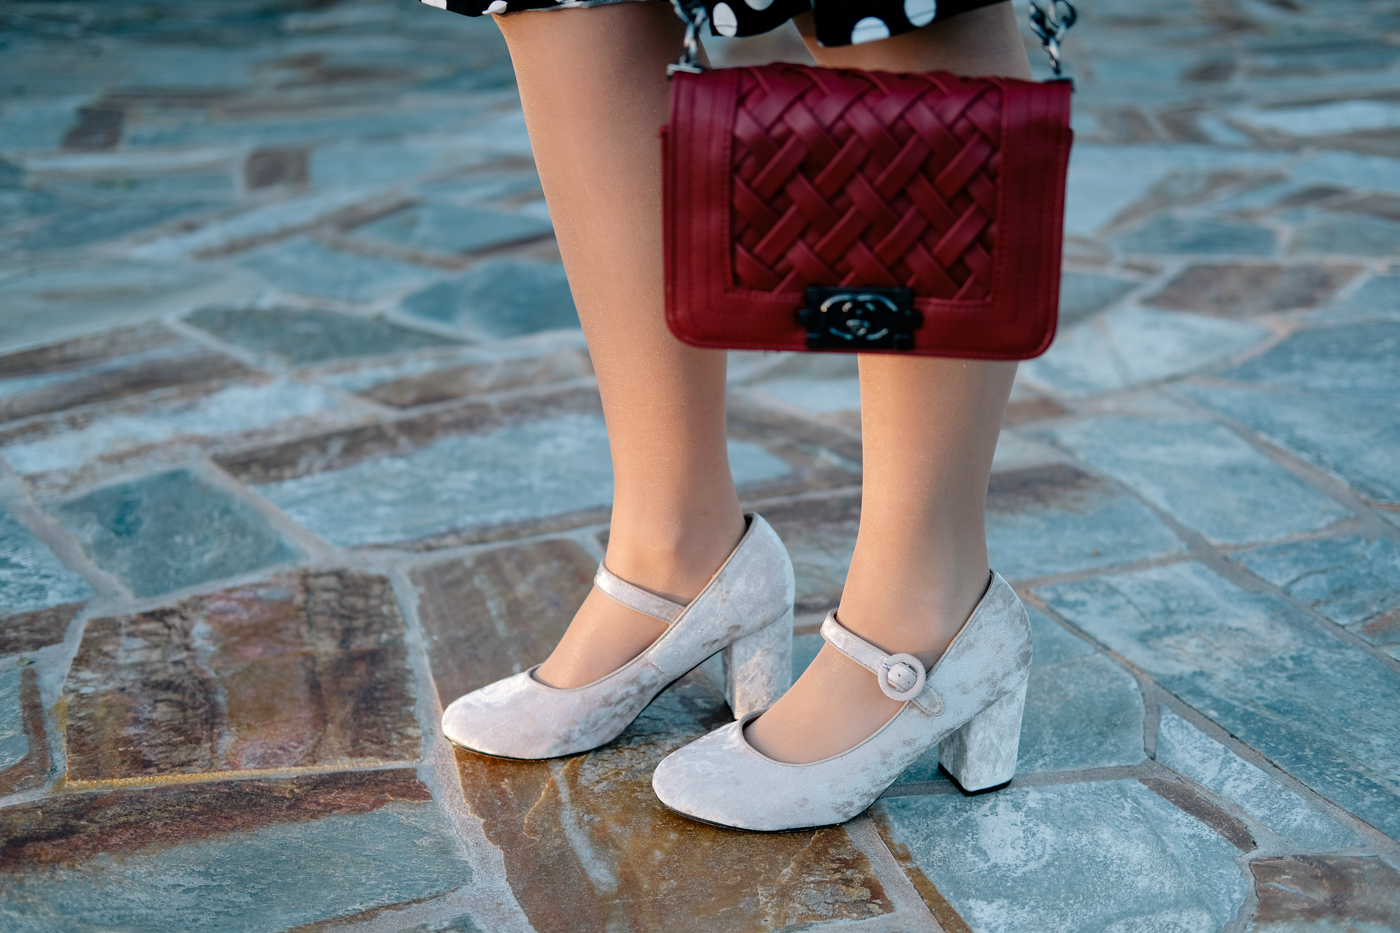 Velvet shoes and red purse